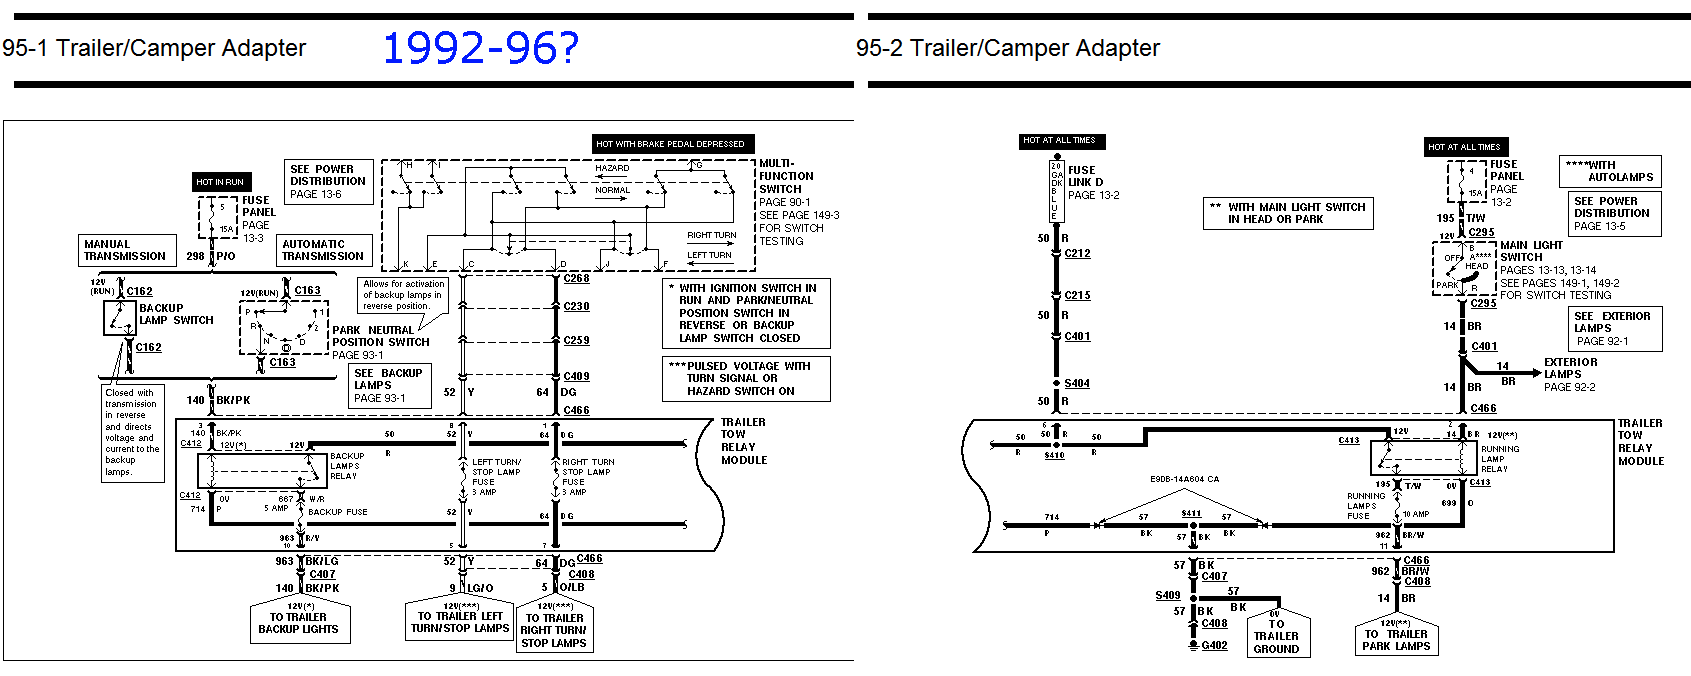 Trailer tow package and trailer wiring questions - Ford Truck ... on 1996 f150 brake diagram, 1996 f150 exhaust diagram, 1997 f150 trailer wiring diagram, ford f 150 trailer wiring diagram, 2000 f150 trailer wiring diagram, 1996 f150 fuse diagram, 1996 f150 tail light, 1996 f150 turn signal,